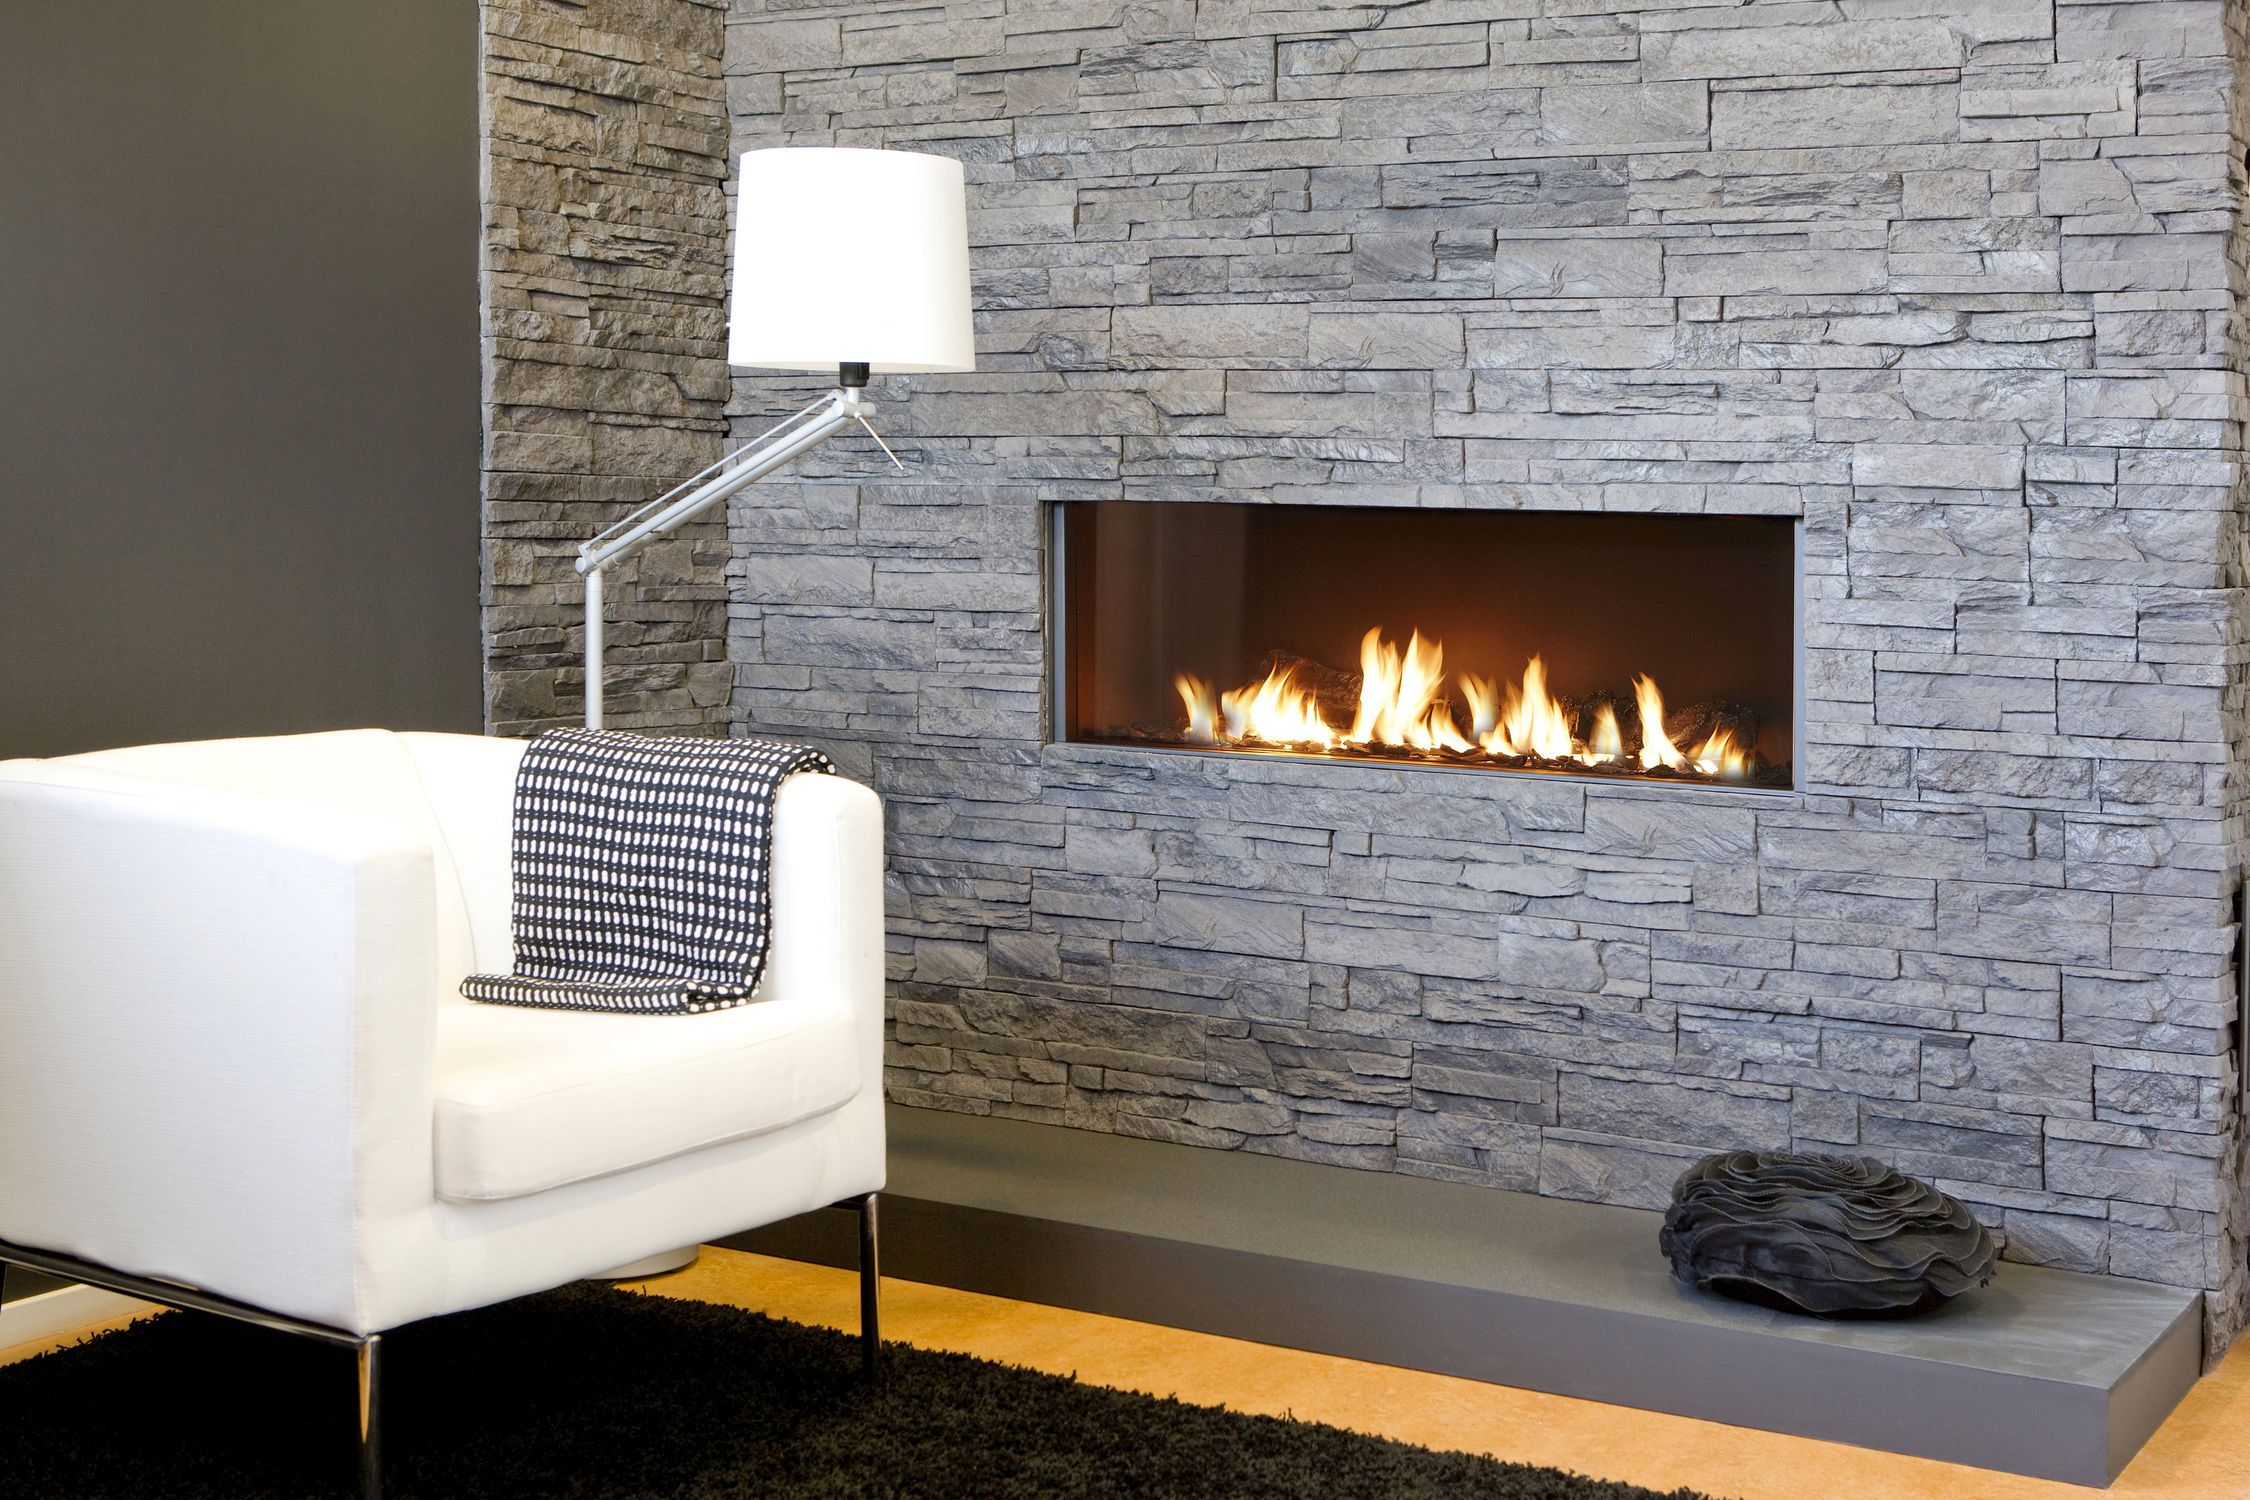 Corner Gas Fireplace Design Ideas free standing corner gas fireplace Contemporary Gas Fireplace Designs Built In Fireplace Modern Design Image Collection Contemporary Gas